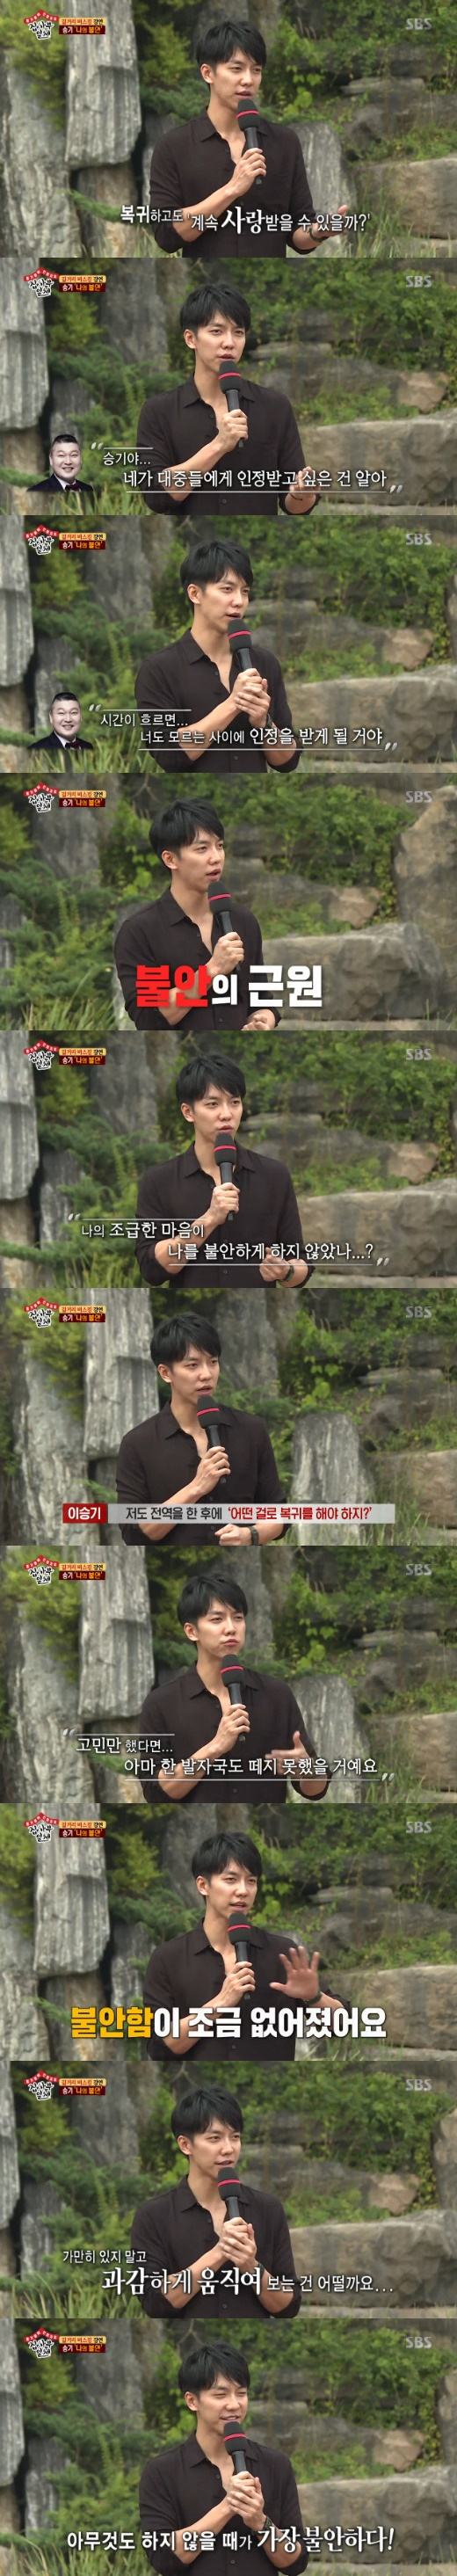 <p>On SBS All The Butlers broadcasted on 15th, Lee Seung-gi, Lee Seung-yun, Yang Se-hyeong who was raised in the proposal of the thirteenth sub-Sulmun stone were drawn.</p><p>Members of this day gave a lecture on Sulmun stone lecture mystery, then lectured on the theme Lecture my history. Lee Seung-gi gave a lecture on the theme of Anxiety.</p><p>Lee Seung-gi said that after 15 years of debut, there was another unease from that, Lee Seung-gi said, What happens when we return and then recover Hetgethna two years blank period Can you receive your attention and love again as before and again? </p><p>He said, I first made a cell phone with Kang Ho-dong seniors, he said. Senpai, I have trouble.The length the brother walked how much weight, responsibility was many digits, I feel now I seemed to be doing what I should do. I asked, What should I do? </p><p>While laughing, you said that it is evidence that you are calling on your anxiety and troubles yourself is growing, it seems you are going well , but at the same time  In order to get the accreditation it is probably a lot more than what you thought that the accreditation gives the gift of admission when the practitioner does not actually recognize that It was explained.</p><p>In addition, At that time I received a lot of things finally seems to want to improve my anxiety, he said, Id like to do better as soon as I would like to acknowledge it soon, as soon as I hear the words, my urgent mind is my anxiety I thought that I was doing it. </p><p>By the way I was endlessly uneasy if I did not do anything, Lee Seung-gi said, I was not aware of it when I was aware of it after being discharged, he said, by the way The entertainment failed, even without a drama, I cut my legs, I also started drama and performing arts and began to reduce my anxiety. </p><p>Finally, he adds, If you have troubles and you are worried, once you move, you will be sure to see the boldness growing you.</p>